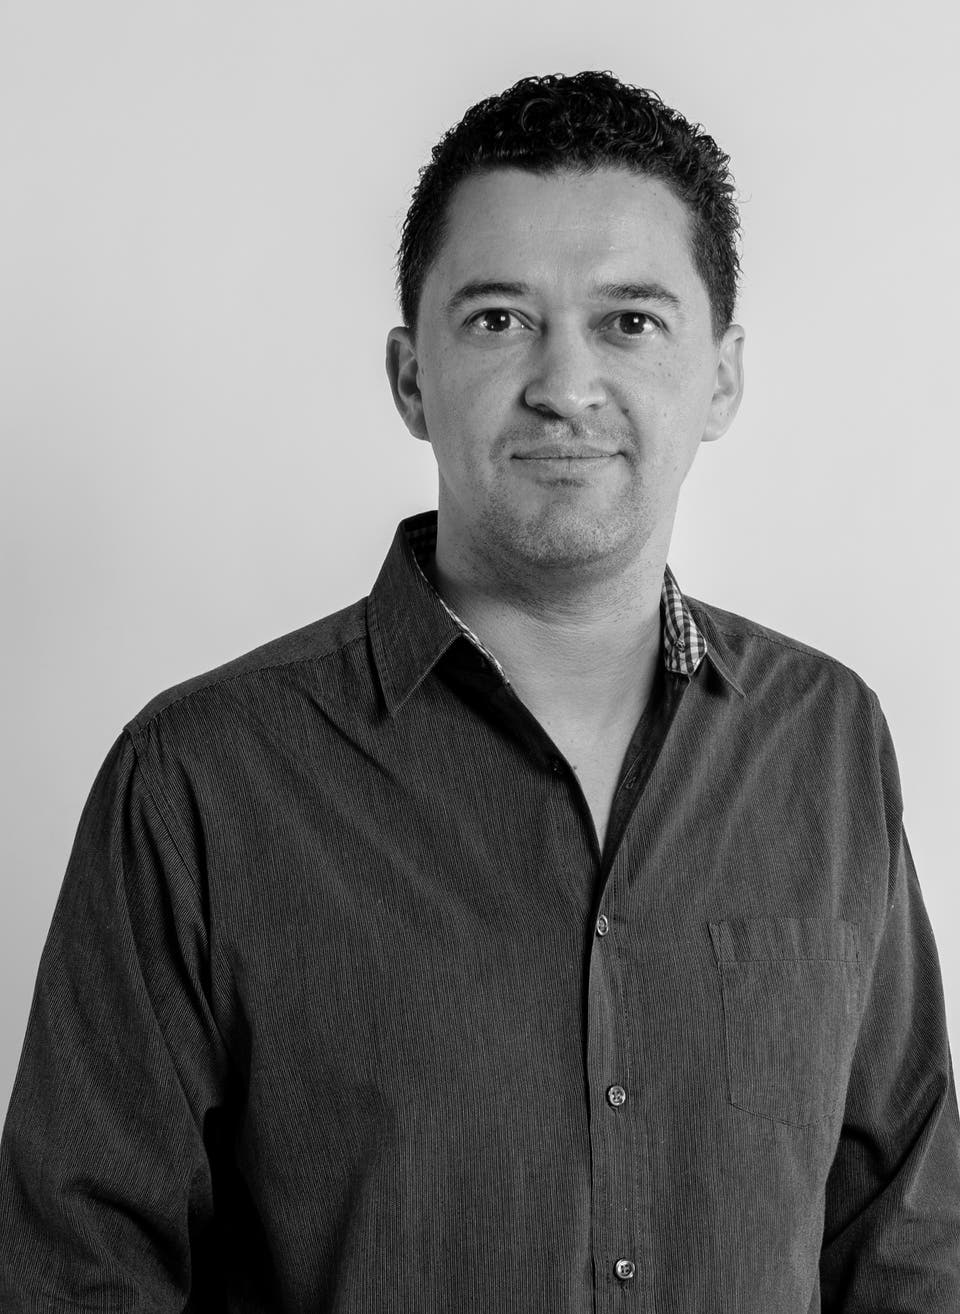 Luciano Juvinski, Director of Navegg